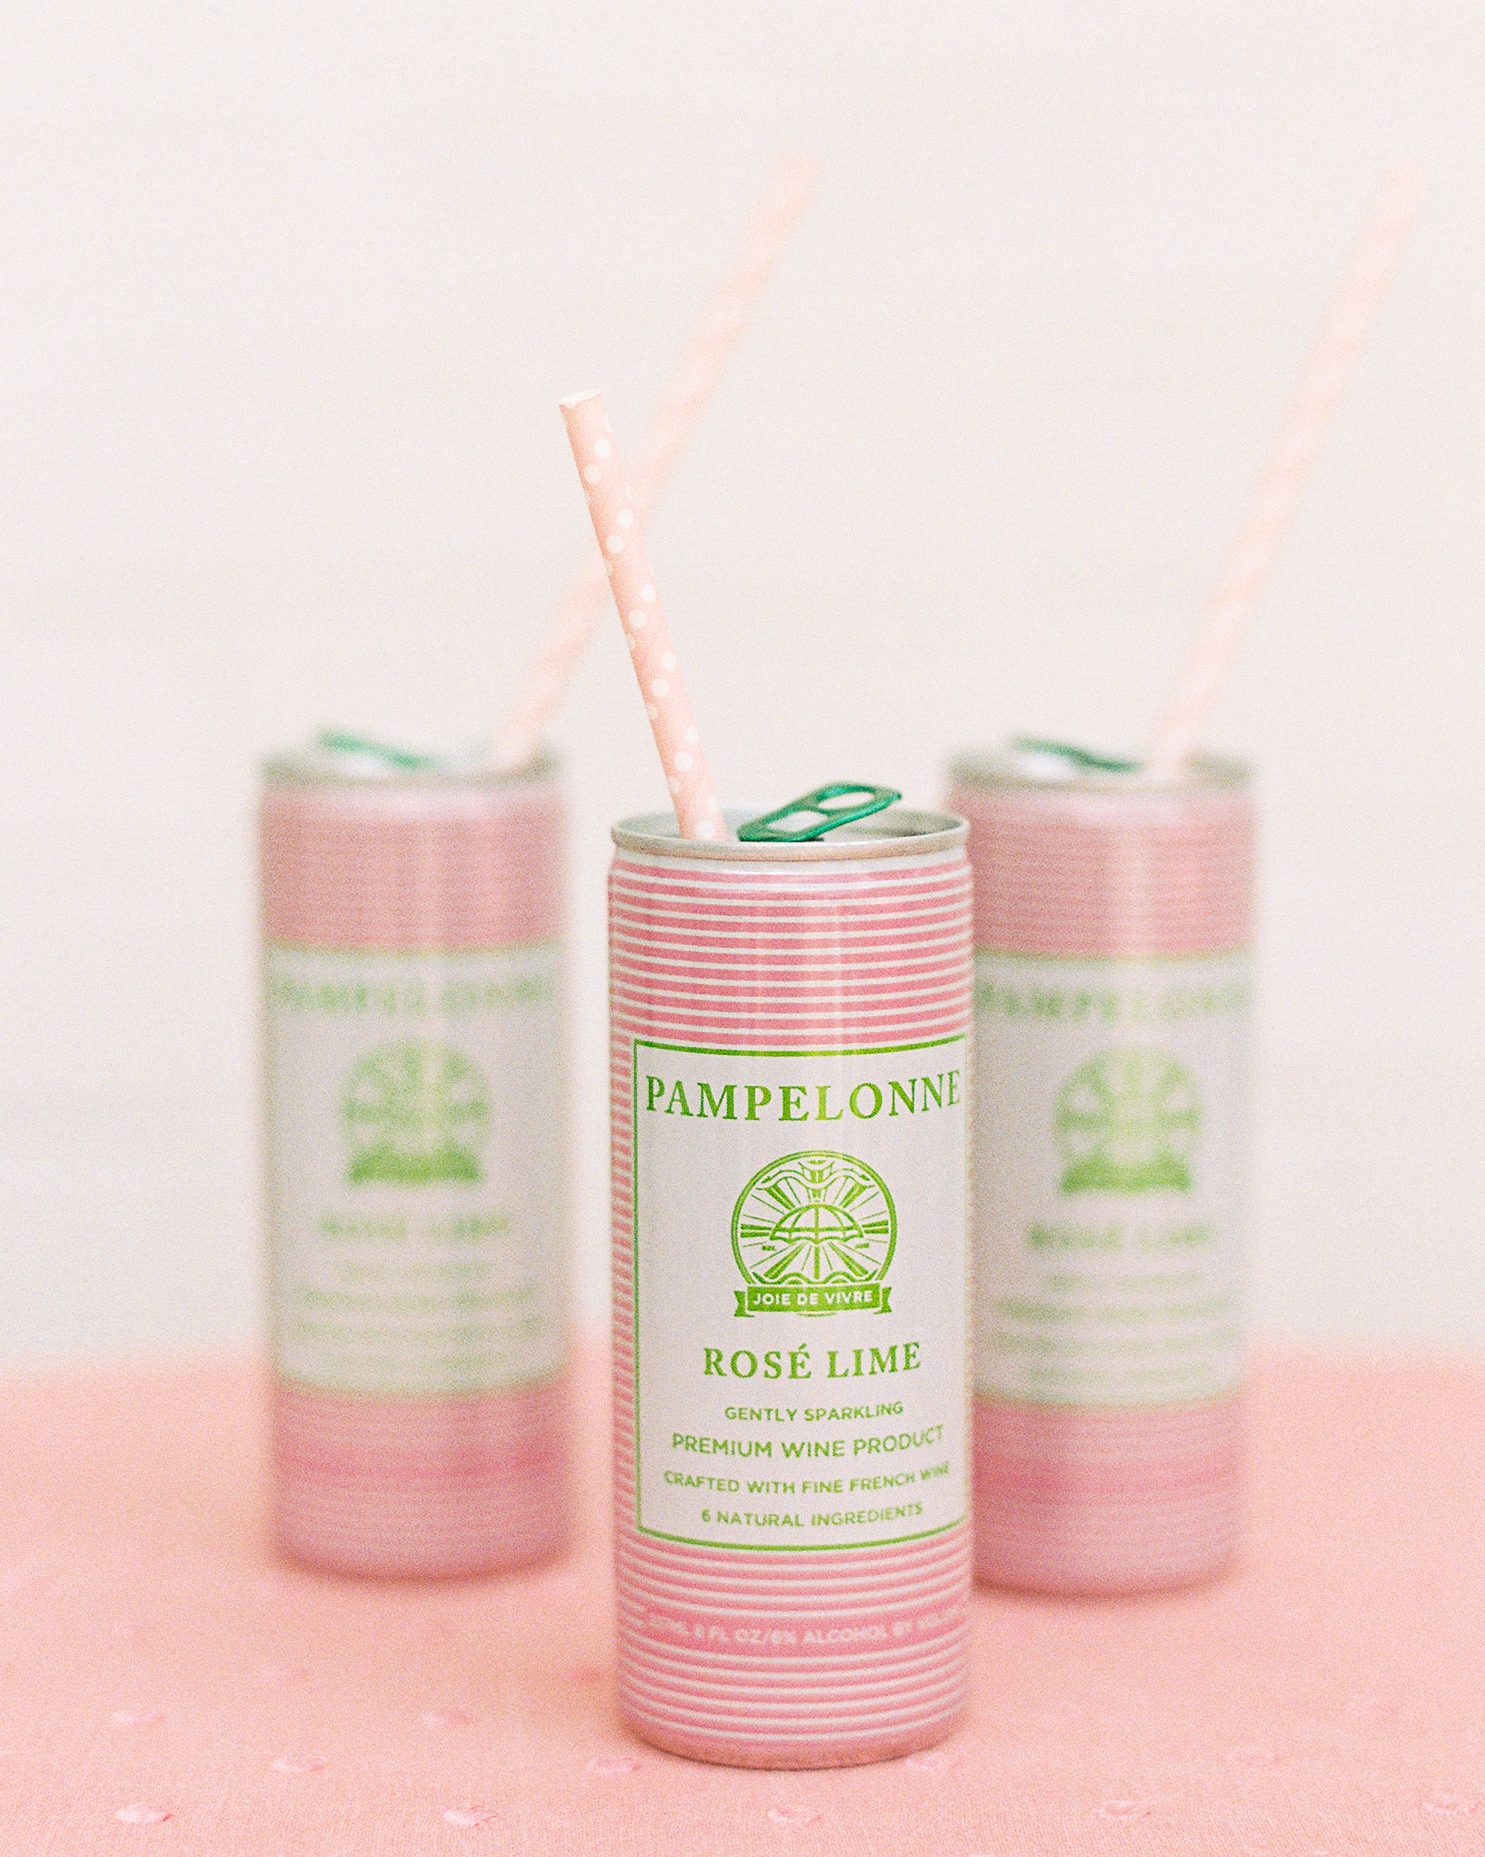 molly-patrick-wedding-cans-3038-s111760-0115.jpg